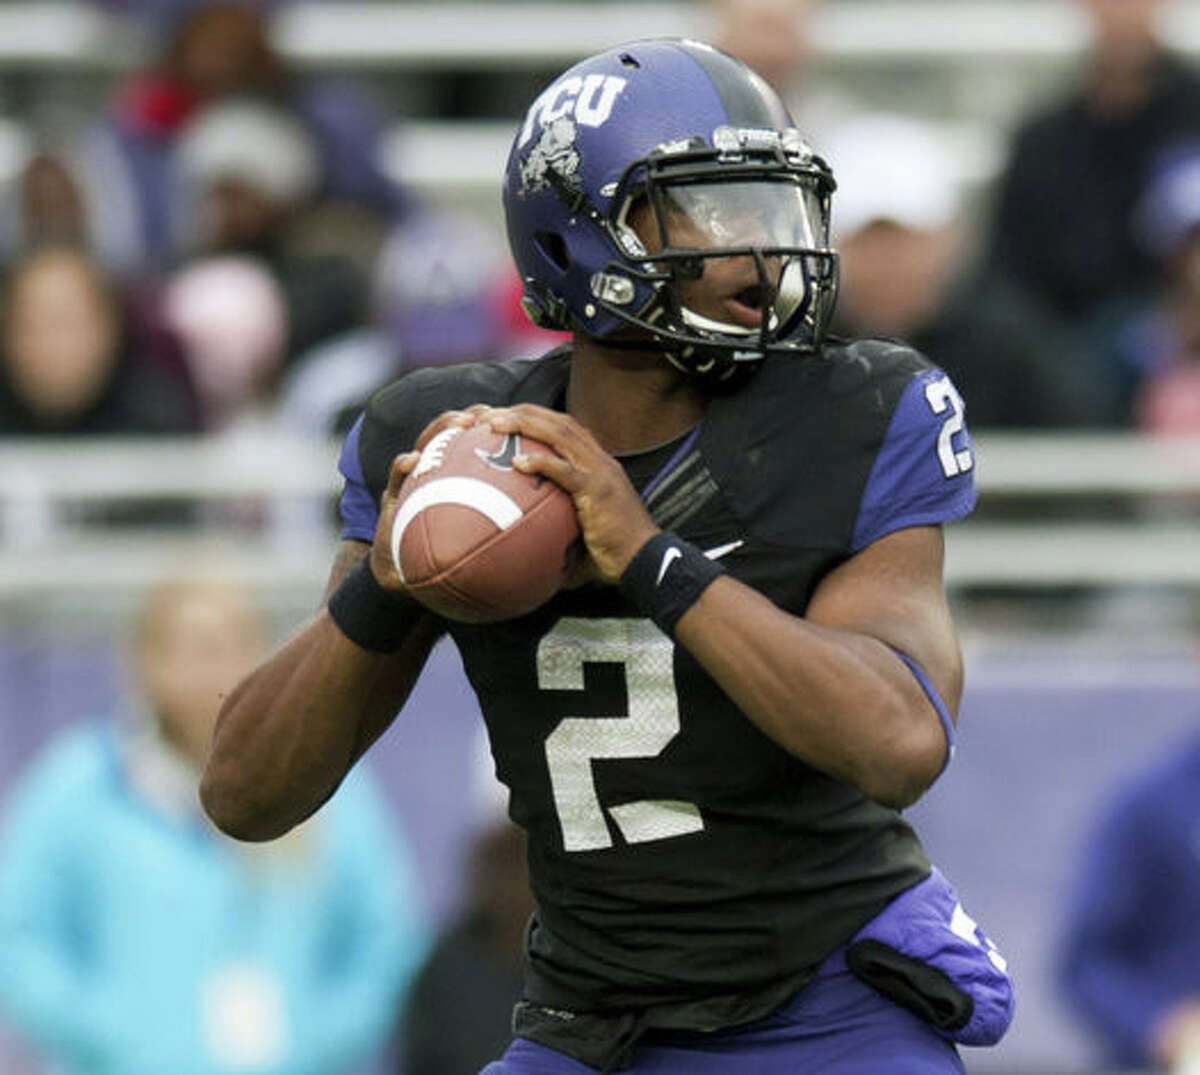 TREVONE BOYKIN, TCU Class:Senior Height/weight:6-2, 205 2015 stats:11 games, 257 of 396, 3,575 yards, 31 TDs, 10 INTs Career stats:48 games, 830 of 1,356, 10,728 yards, 86 TDs, 37 INTs NFL.com grade: 5.0